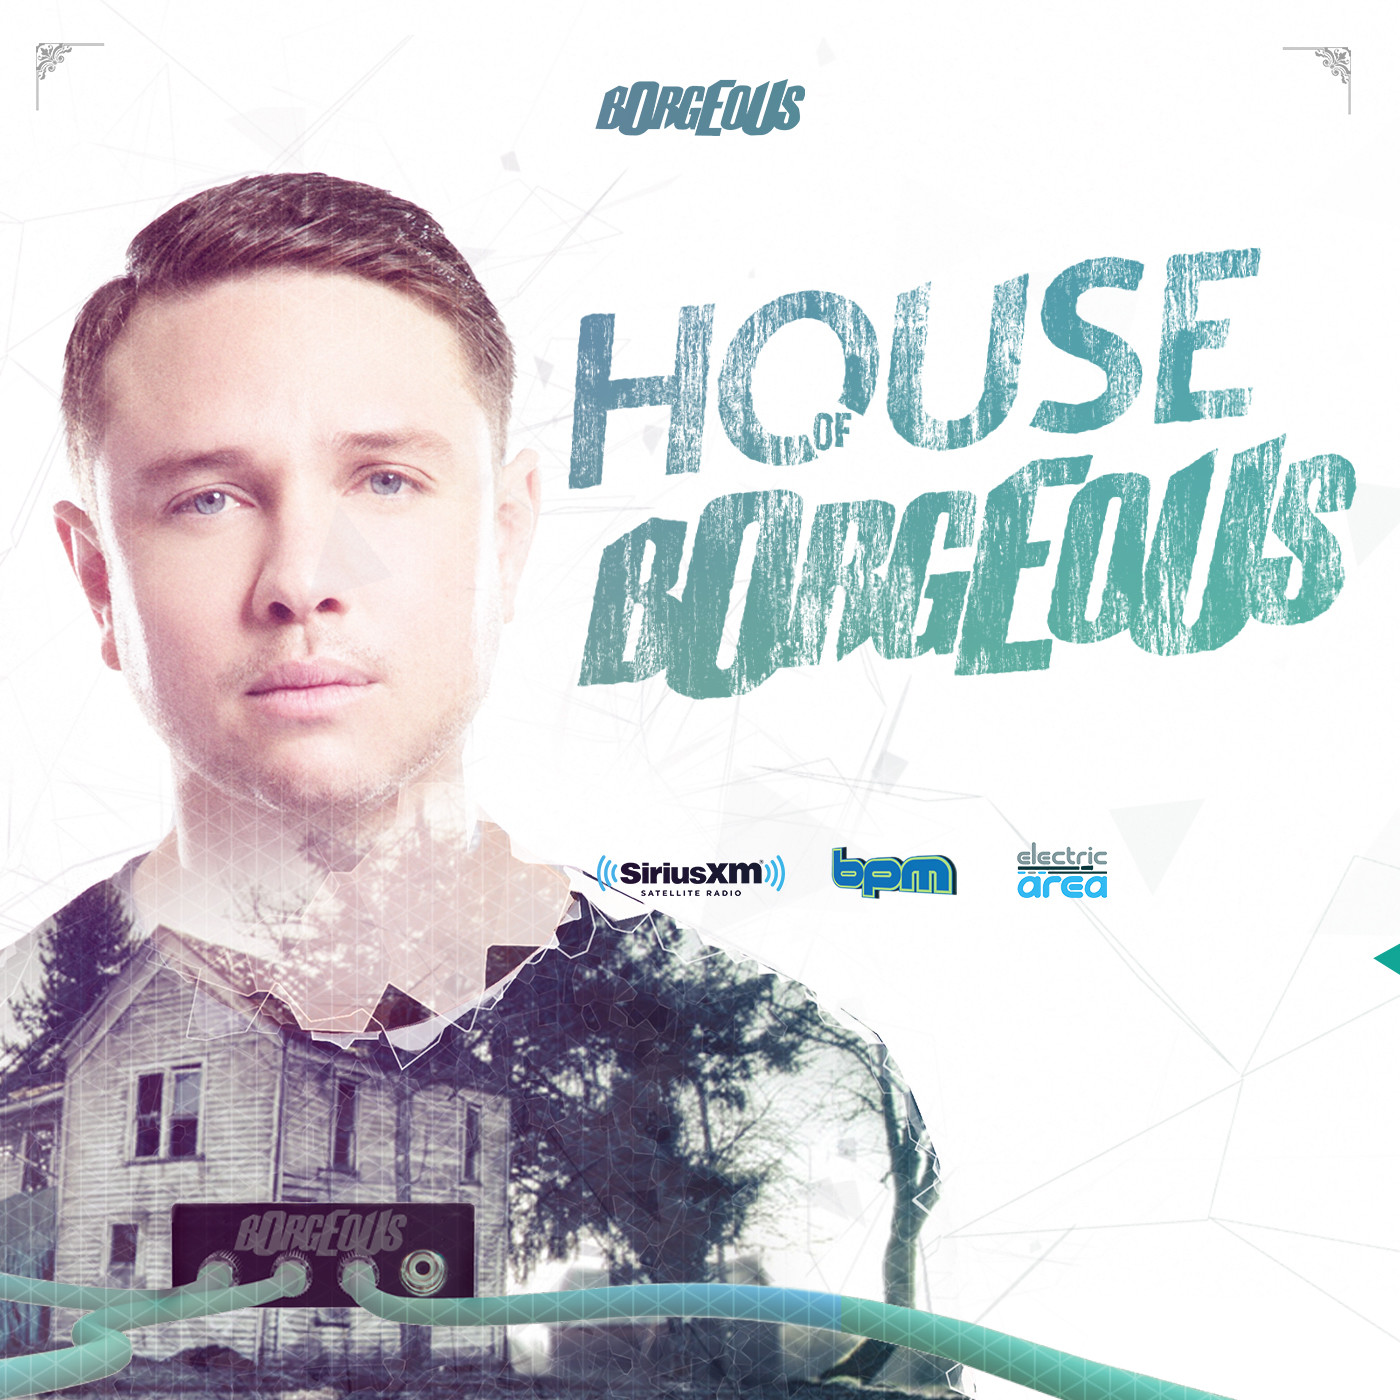 House of Borgeous – Sirius XM (Episode 252)